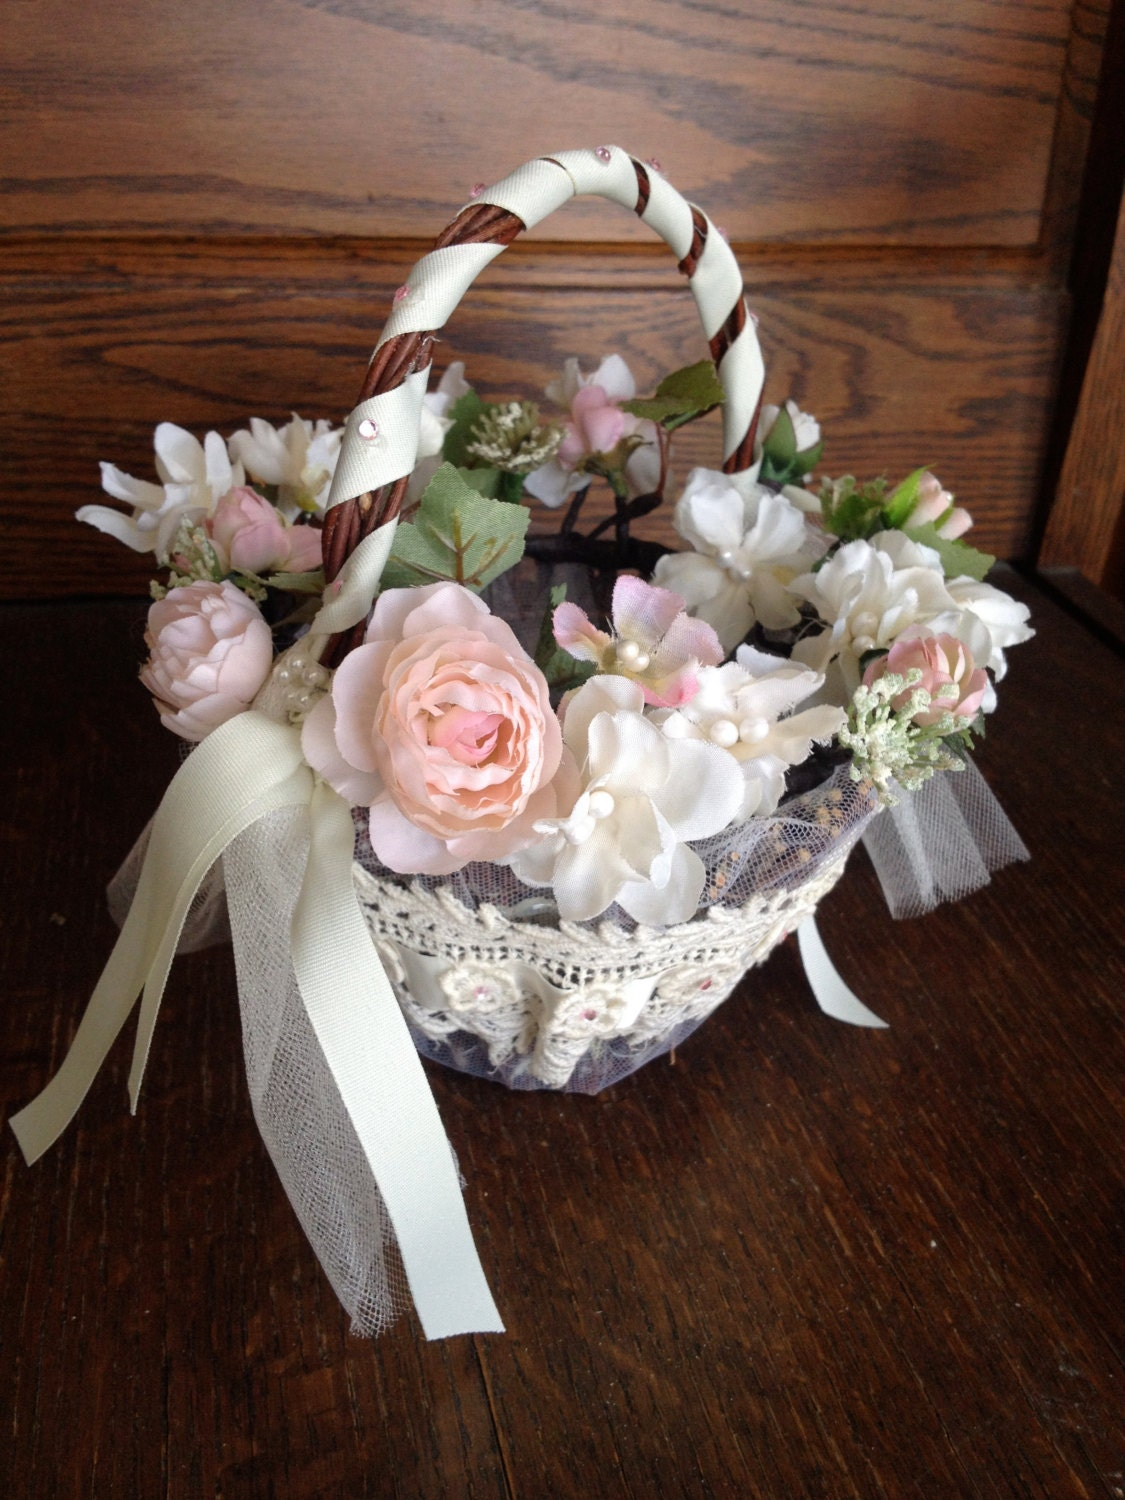 How To Make A Lace Flower Girl Basket : Victorian lace flower girl basket